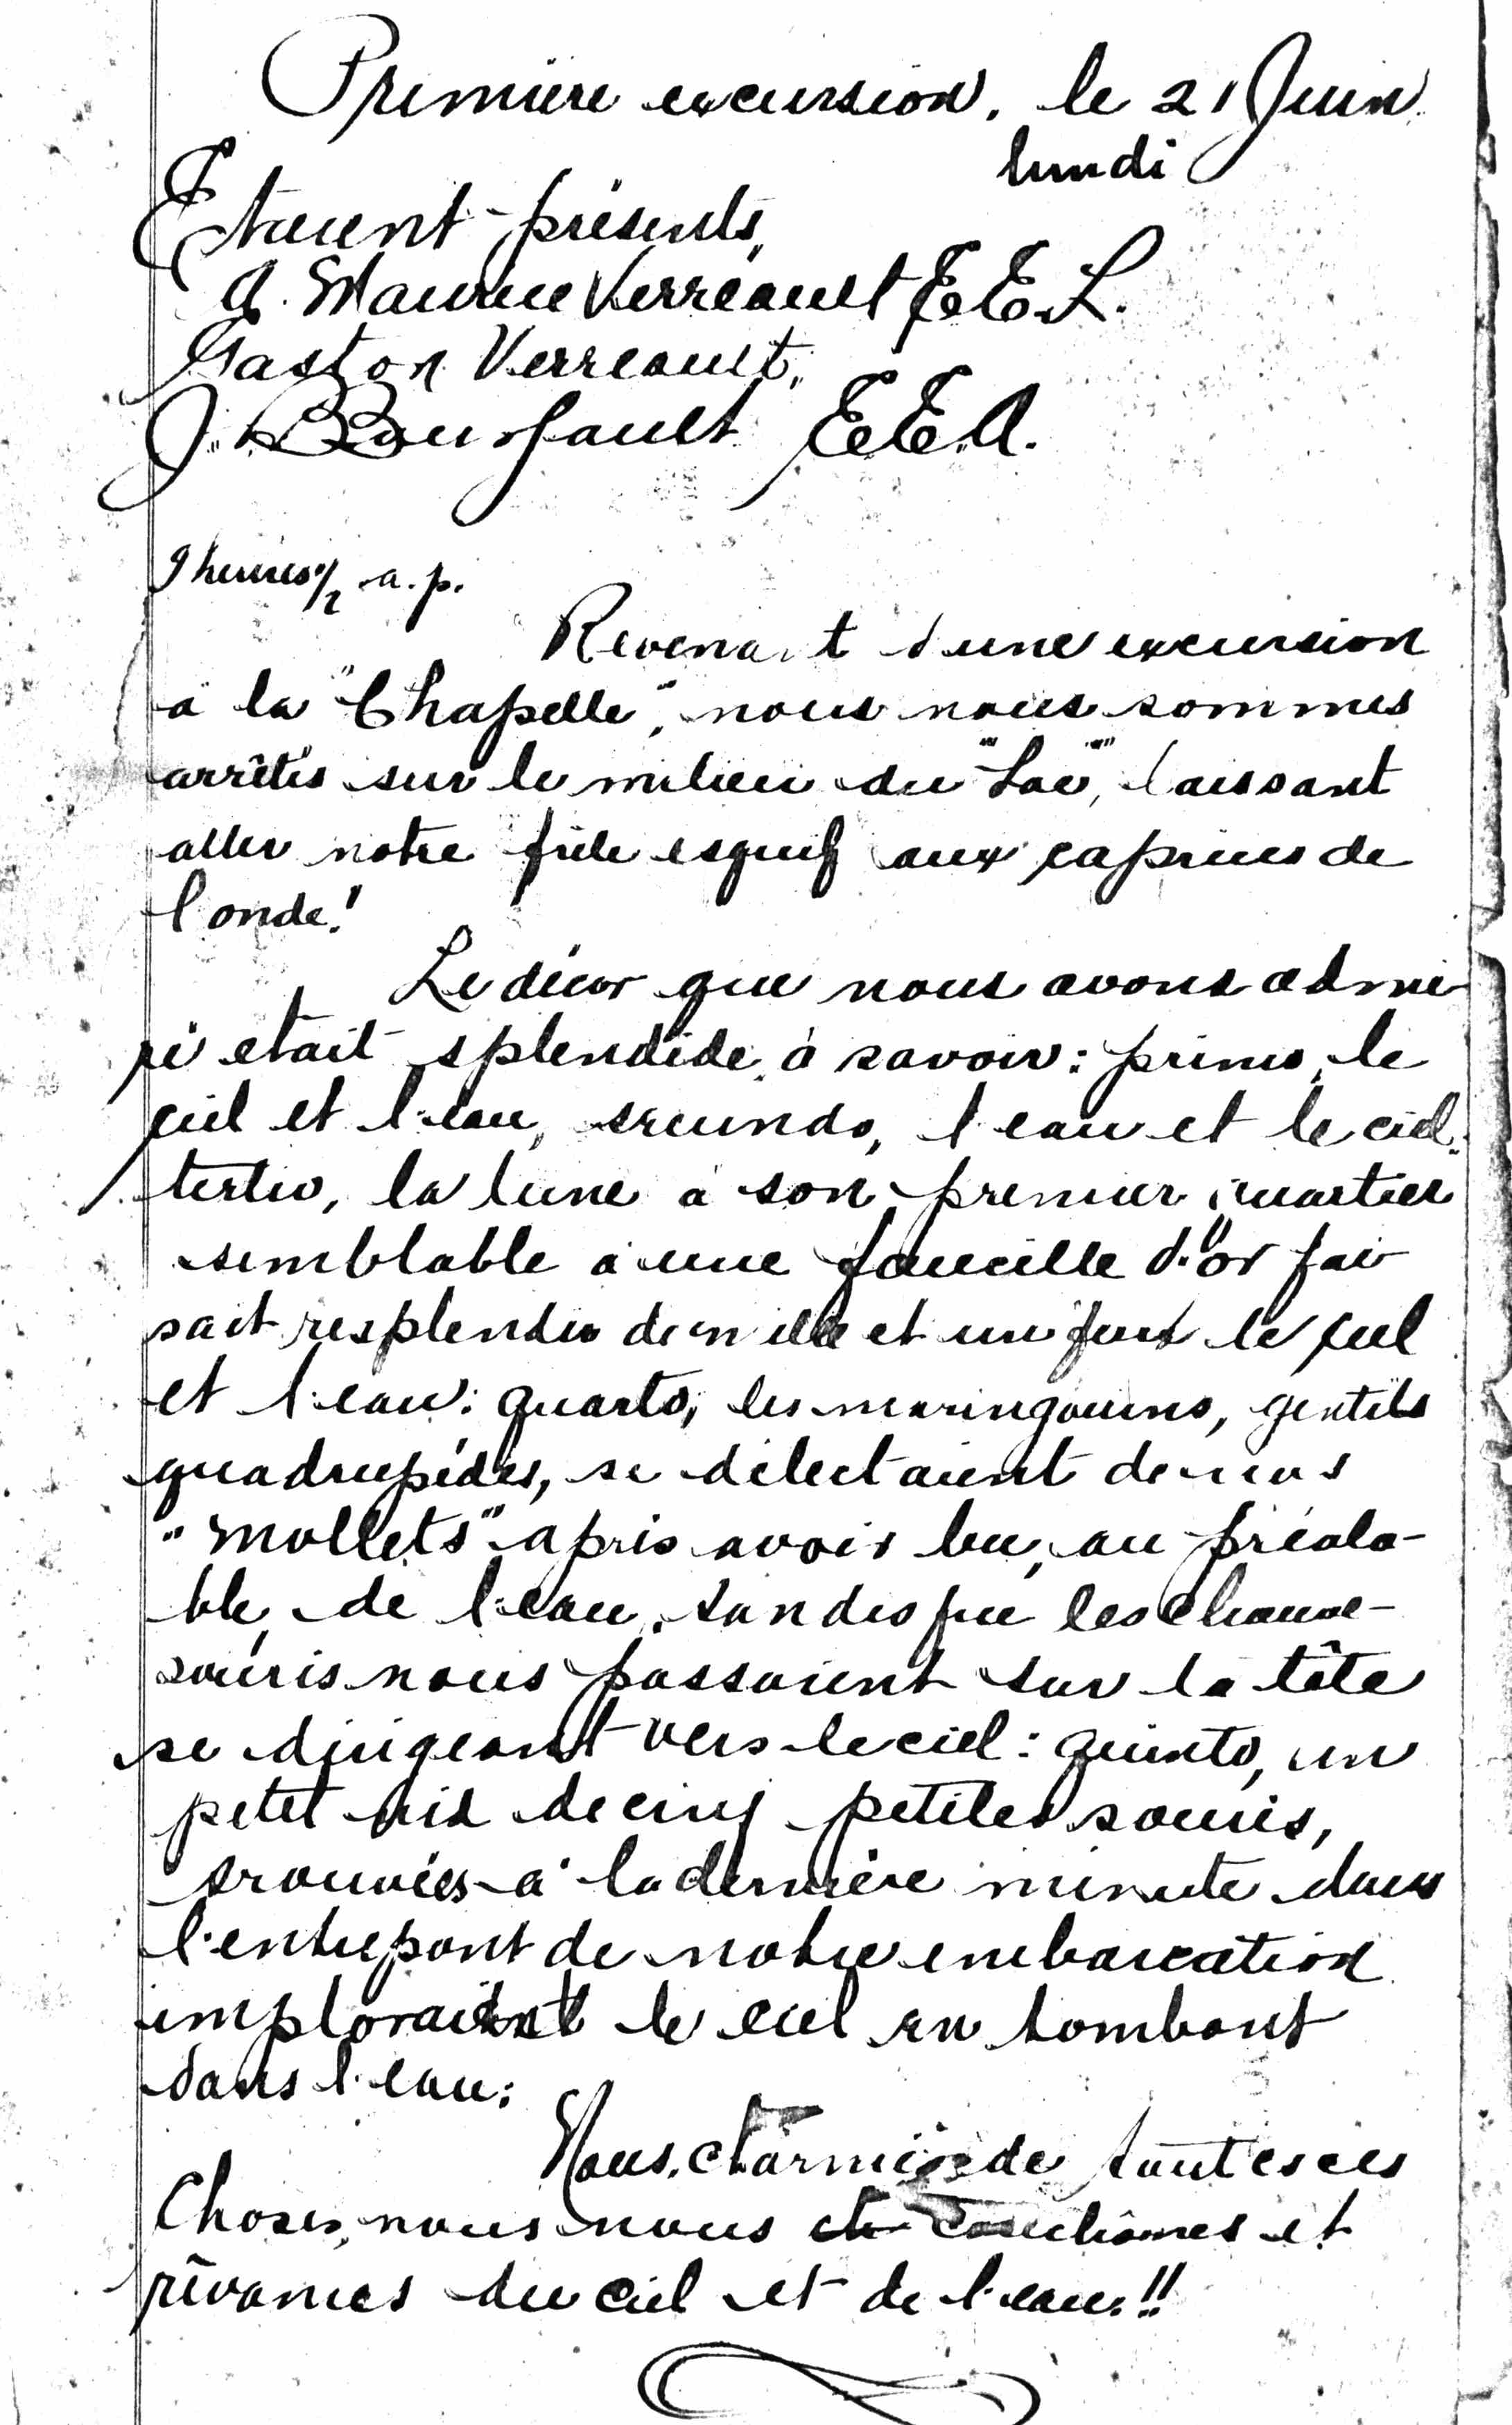 Photocopy of a document written with feather-penned ink.